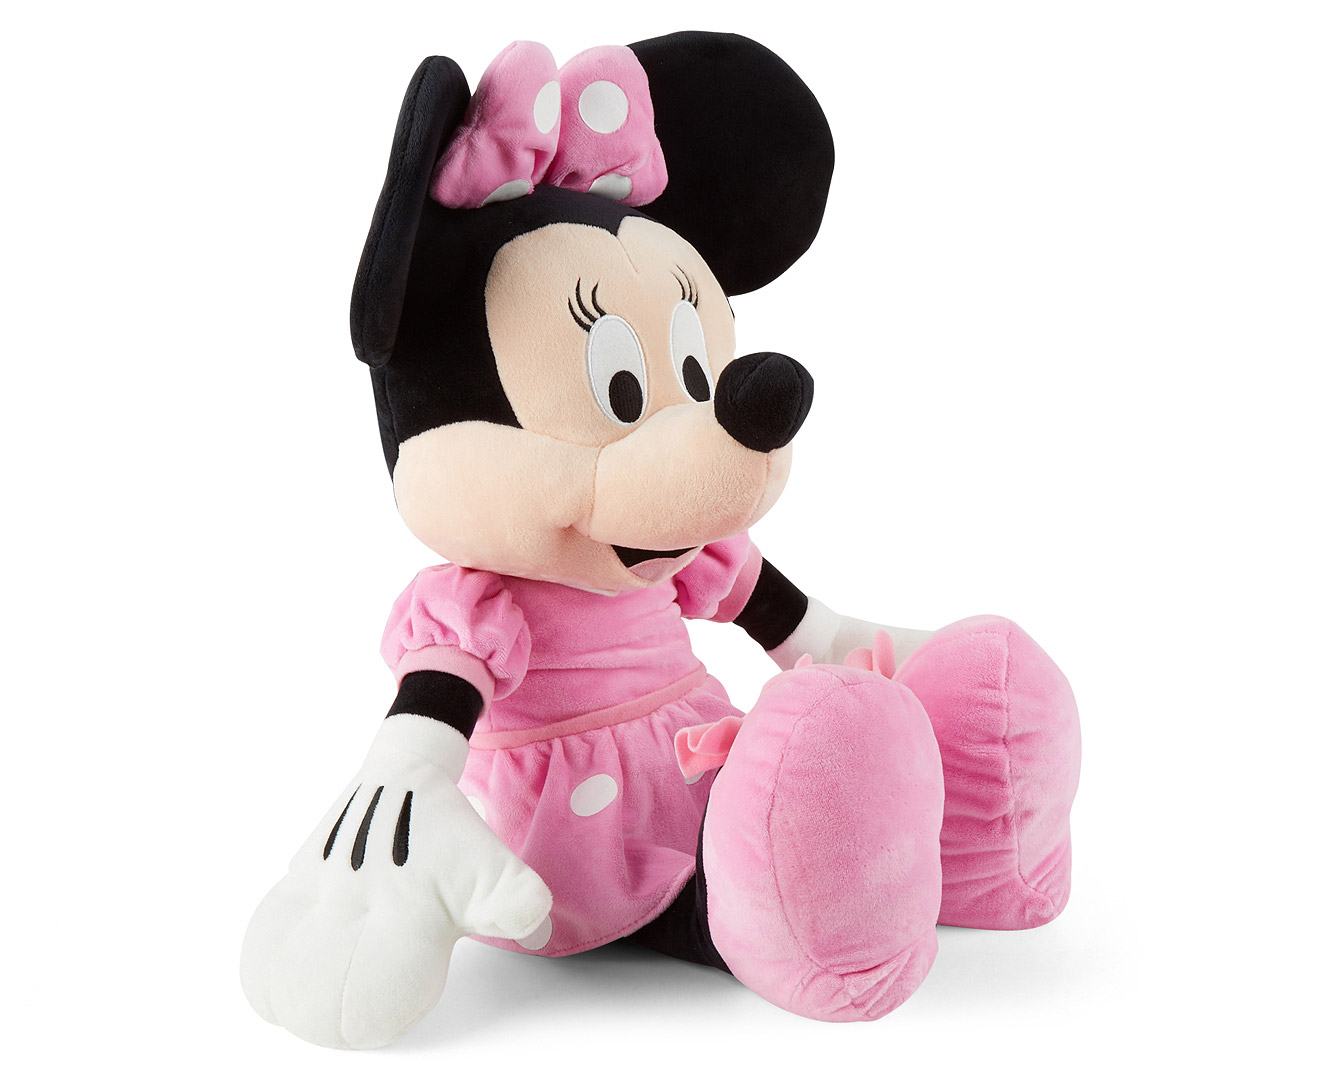 results for minnie mouse soft toy Save minnie mouse soft toy to get e-mail alerts and updates on your eBay Feed. Unfollow minnie mouse soft toy to stop getting updates on your eBay Feed.